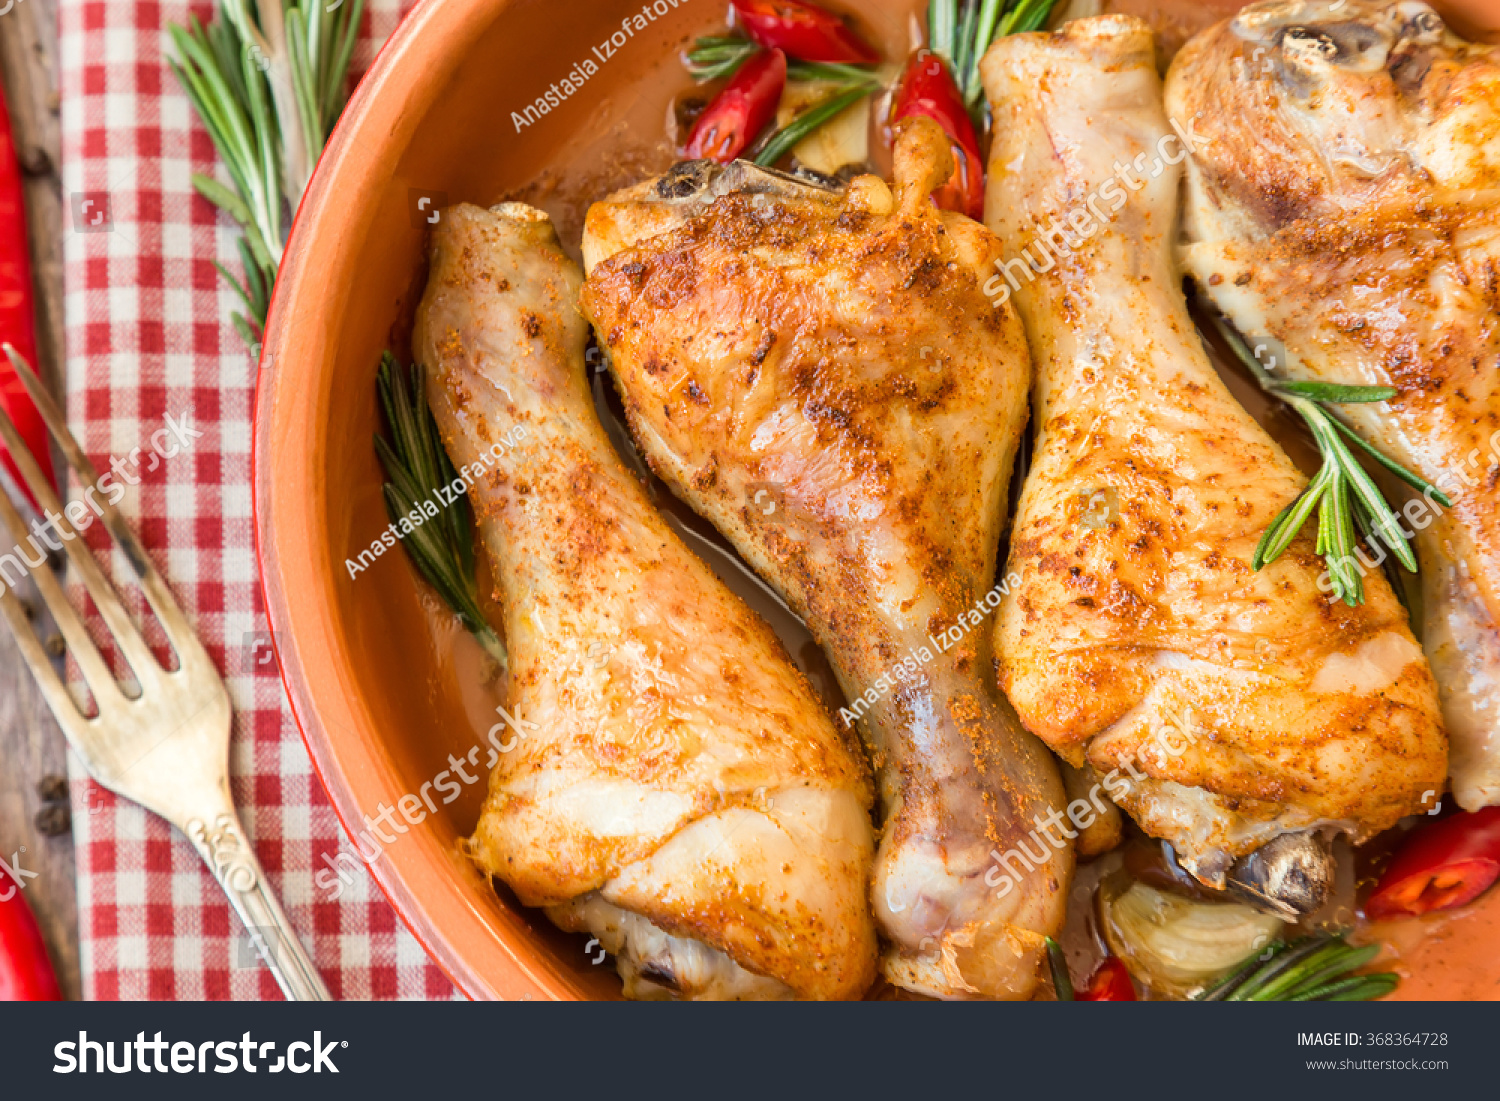 Roasted chicken legs with rosemary, garlic and red chili pepper on ...